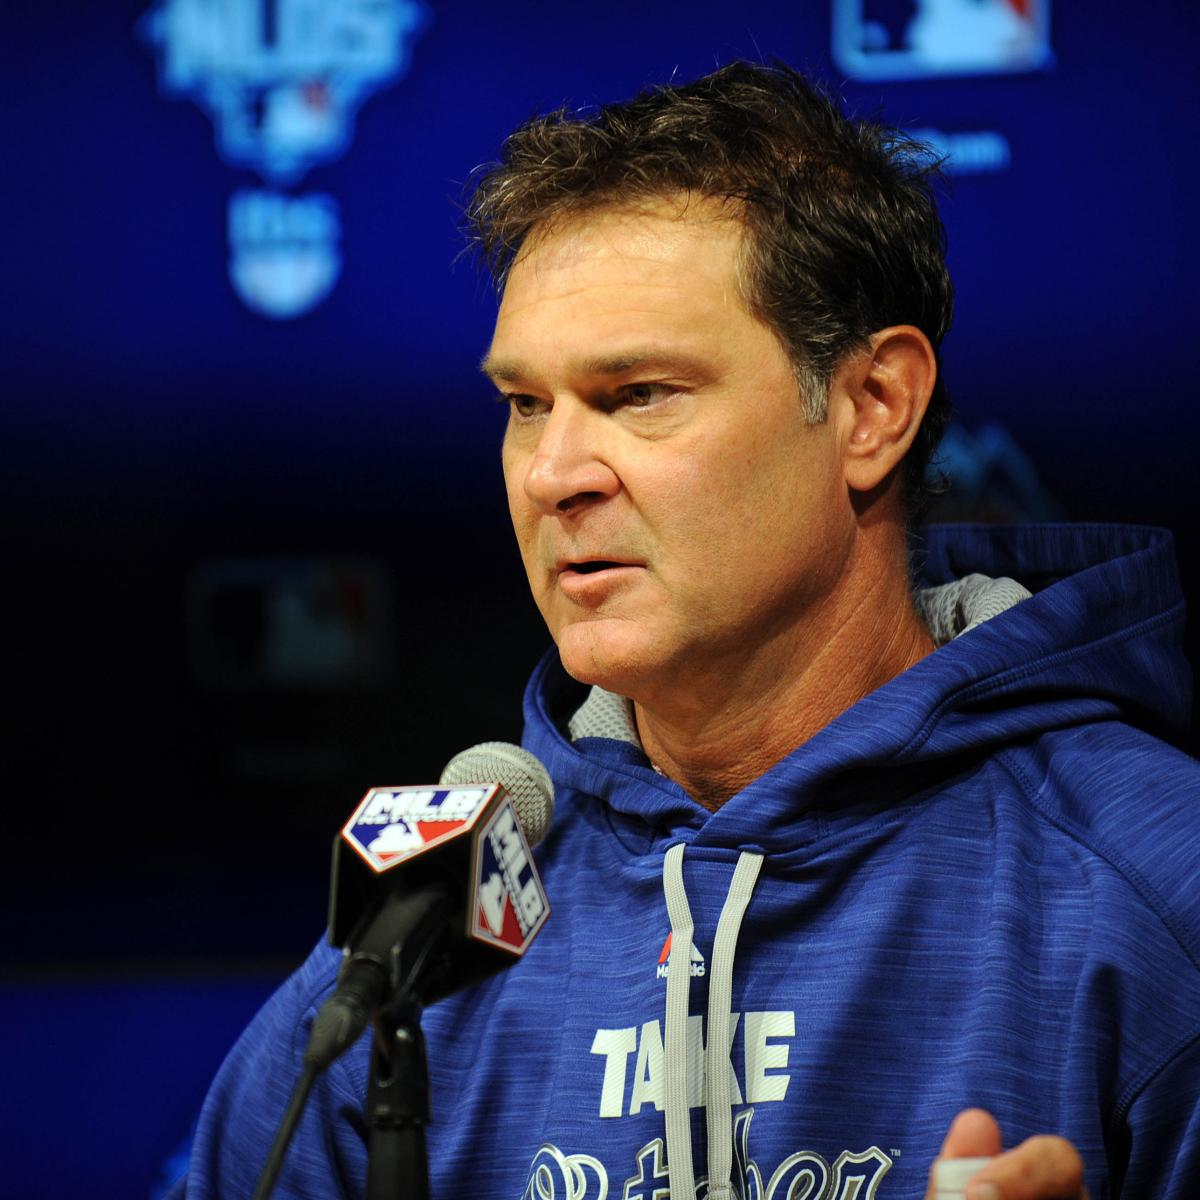 David Mattingly: Dodgers Manager Search: Latest News, Rumors After Don